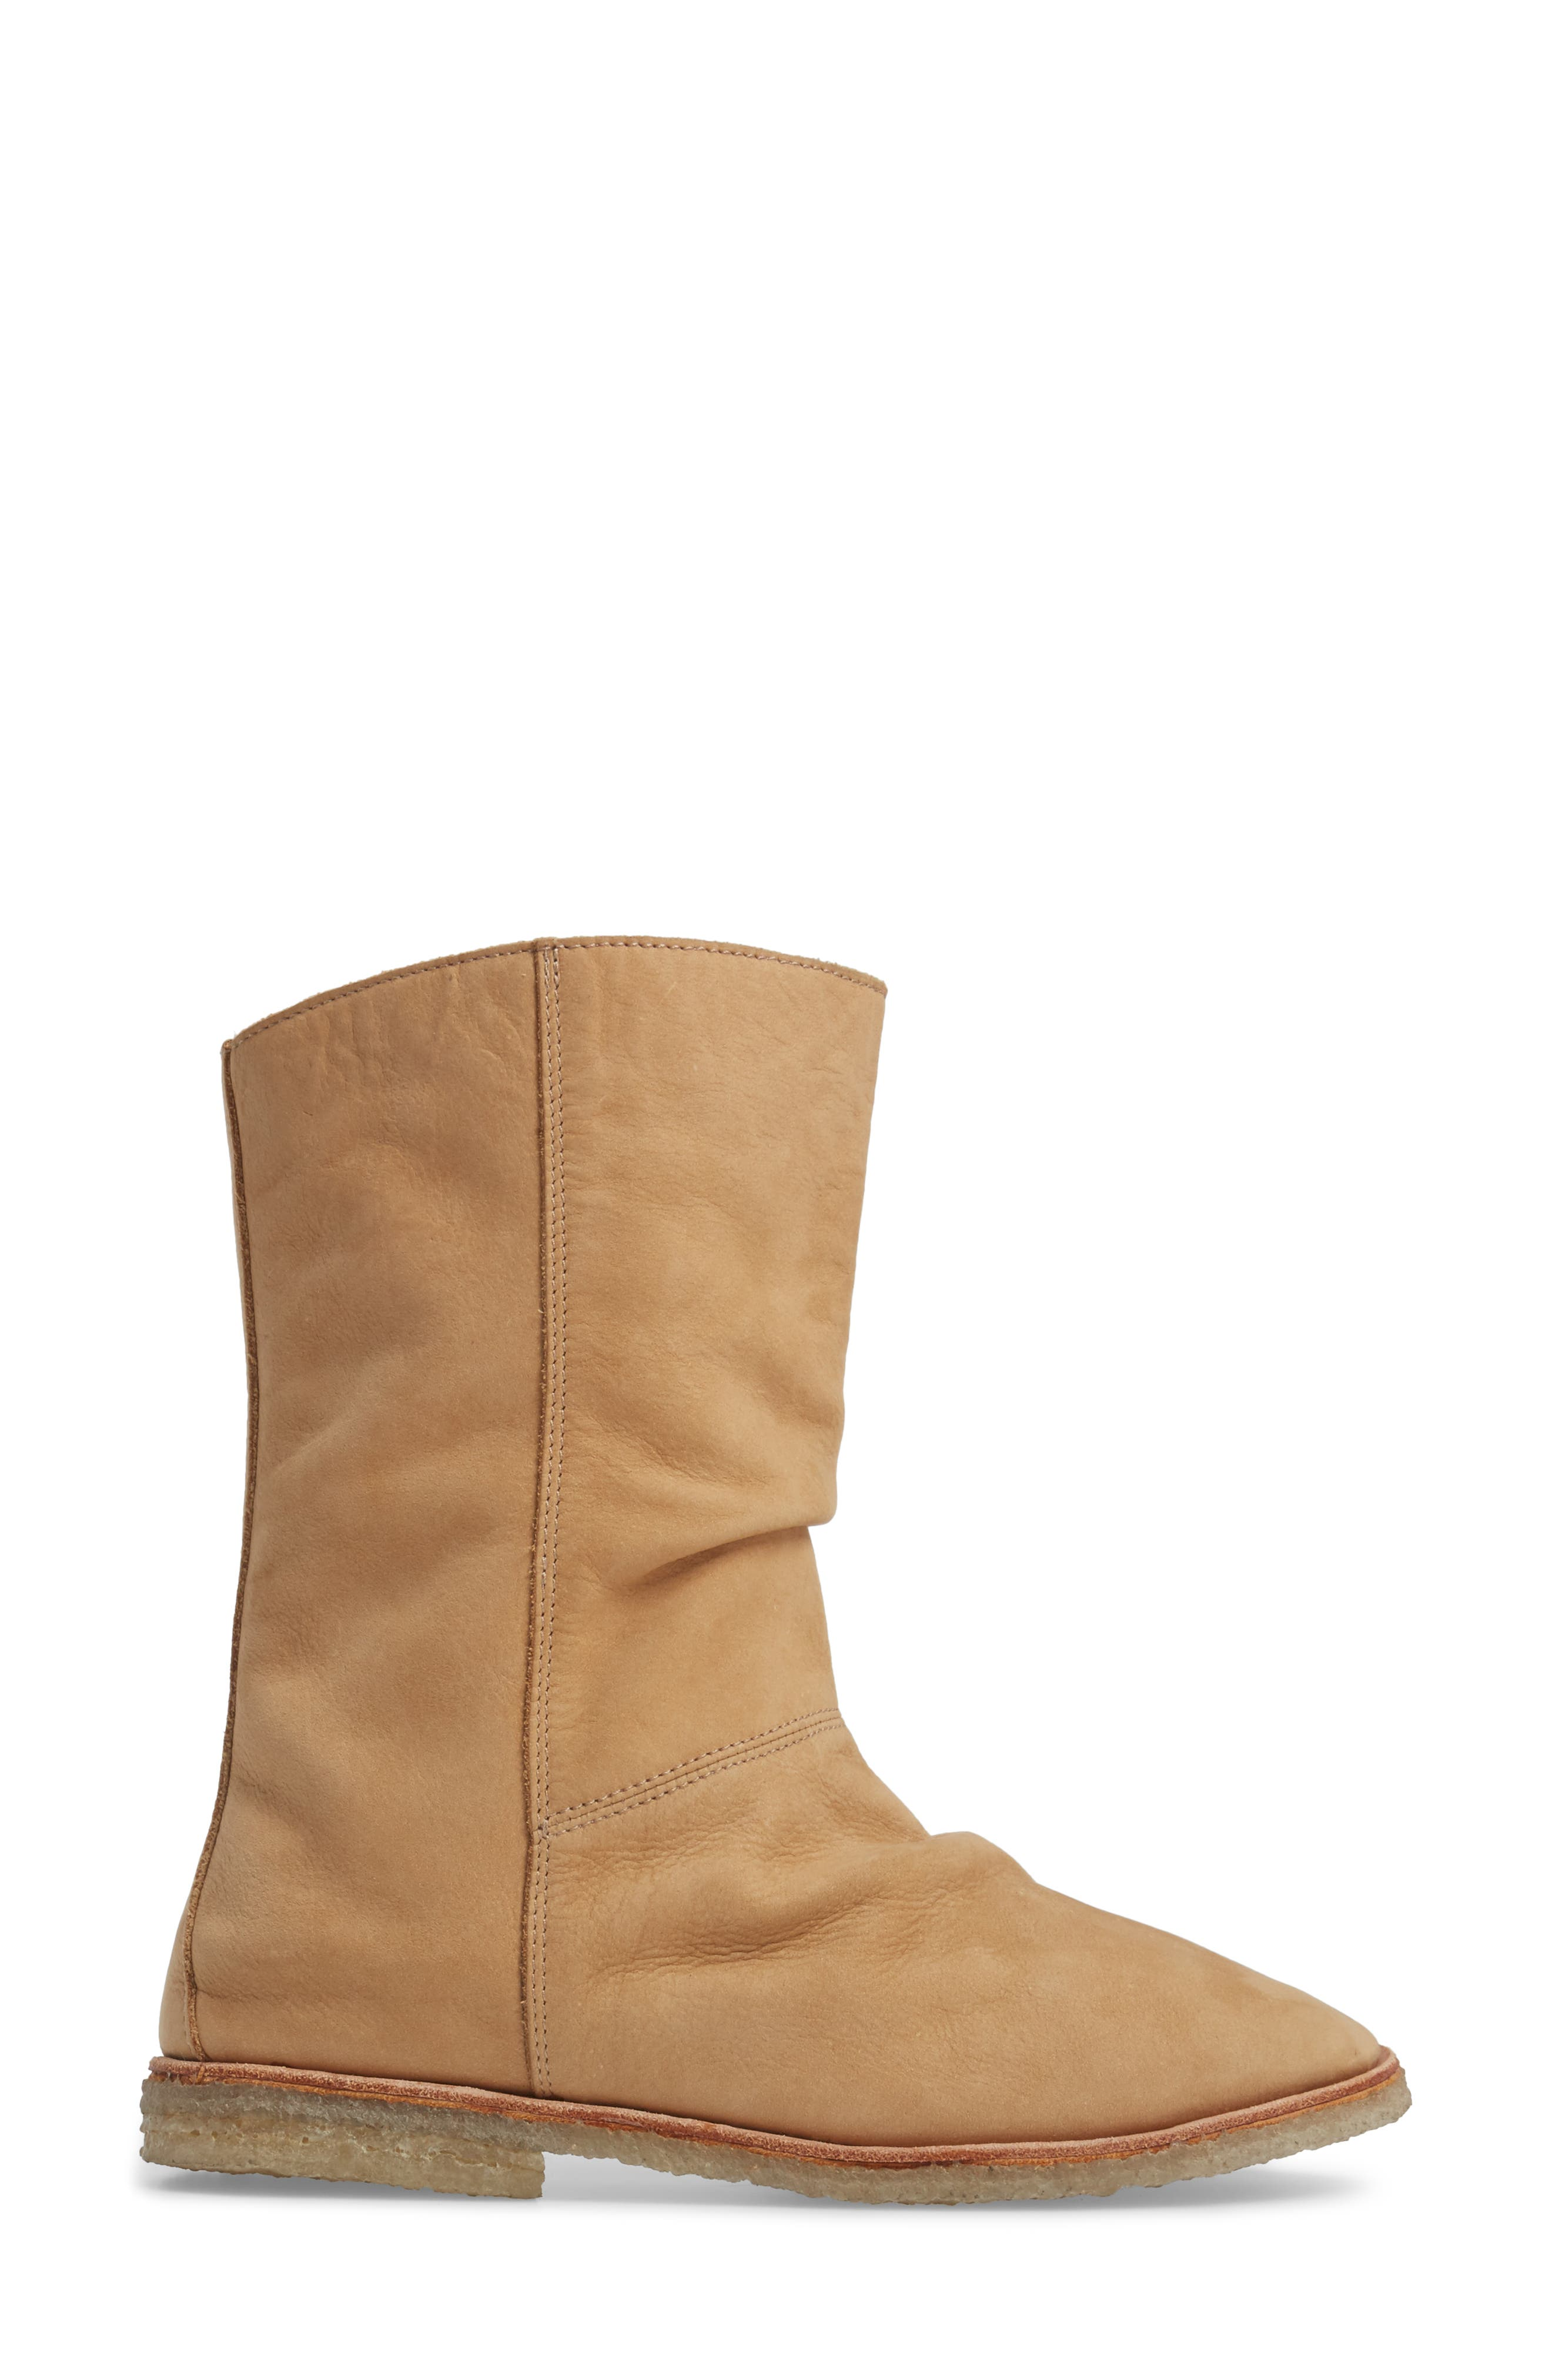 Owl Slouchy Bootie,                             Alternate thumbnail 9, color,